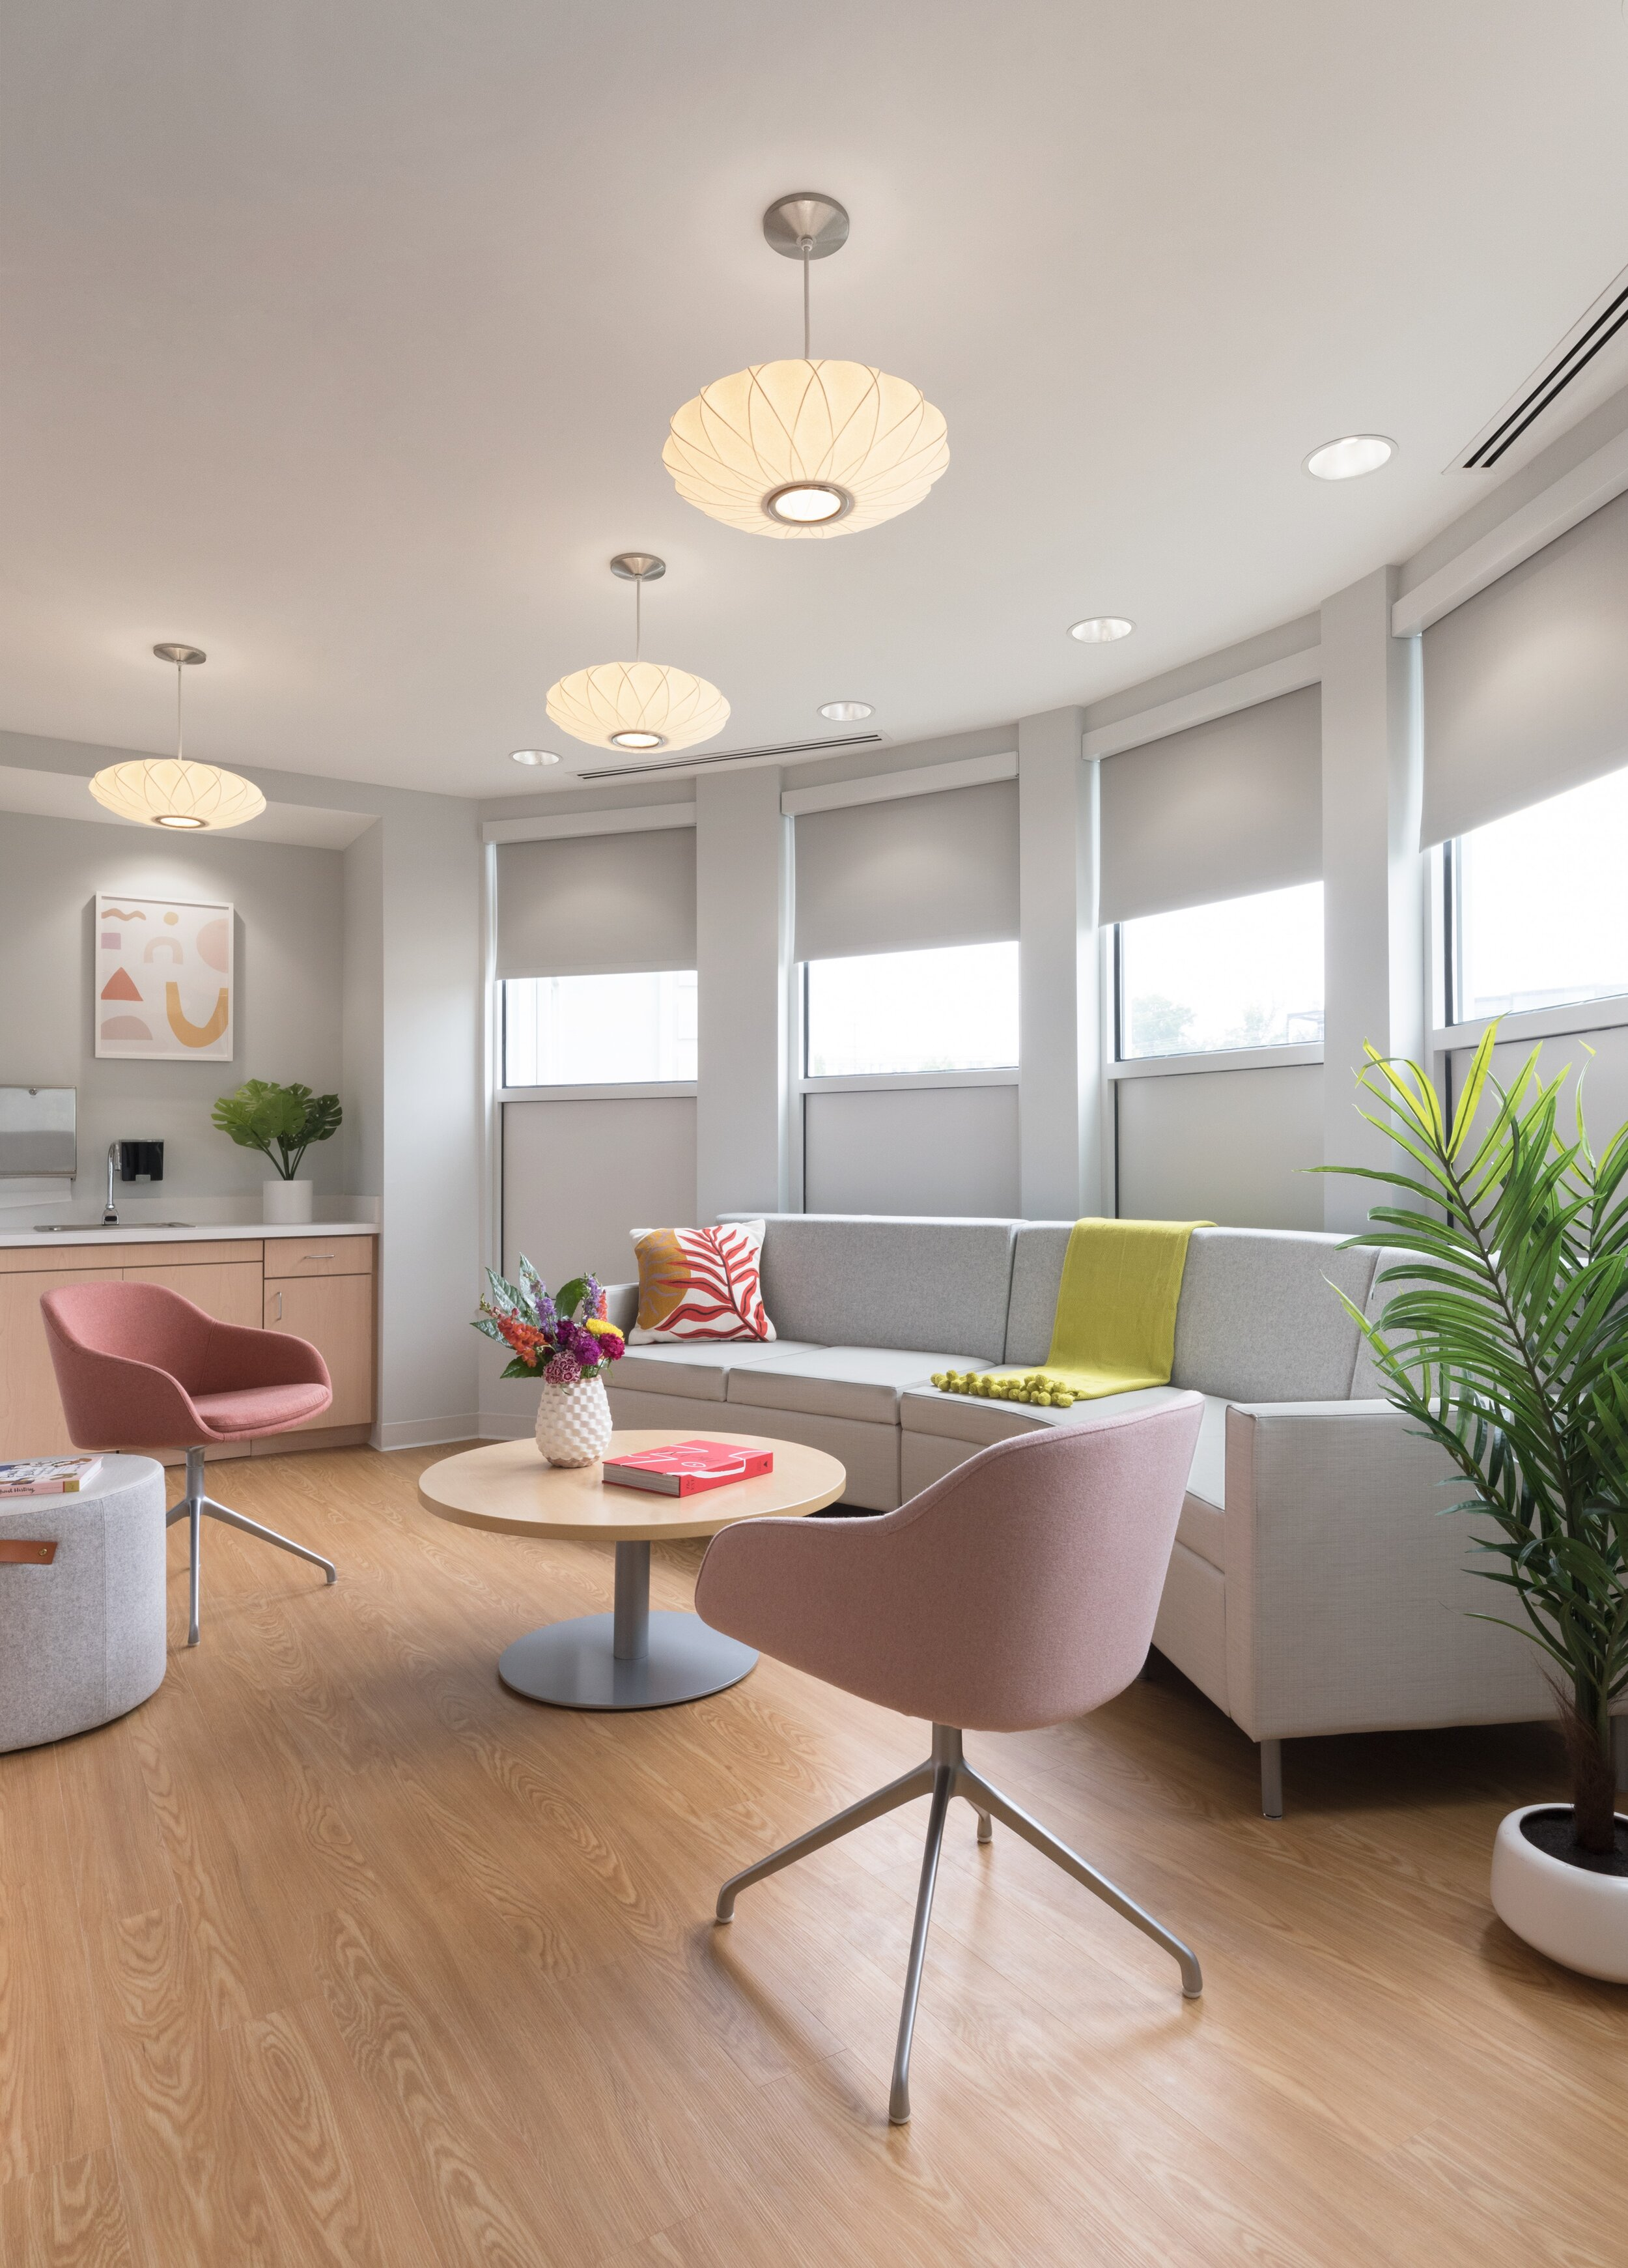 Blackwell Jennings Health And Wellness Commercial Interior Design Raleigh Nc